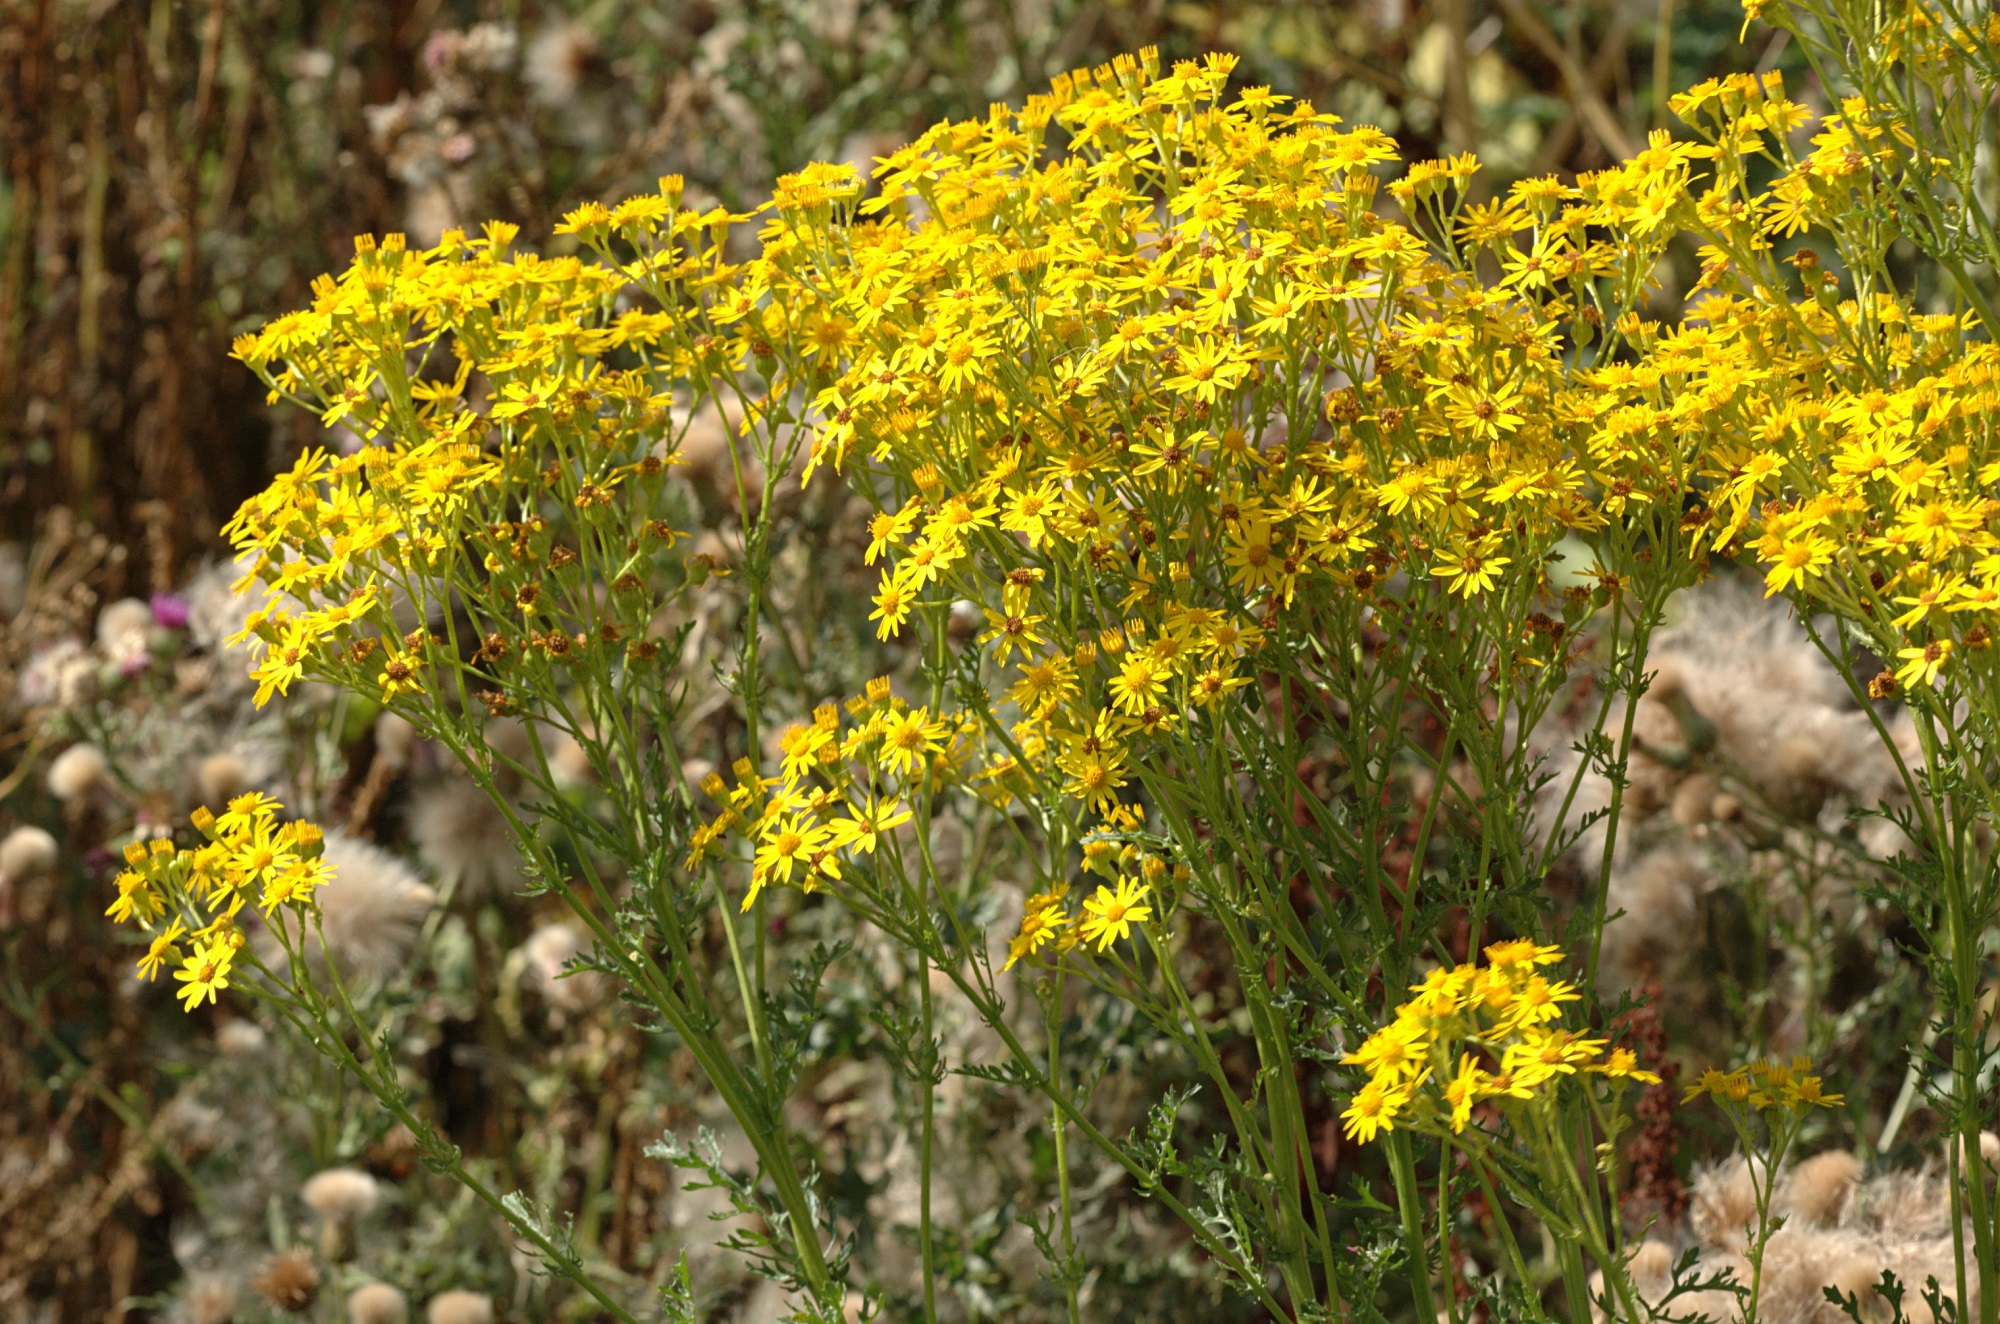 A photo of ragwort, which has bright yellow flowers and long green stems.